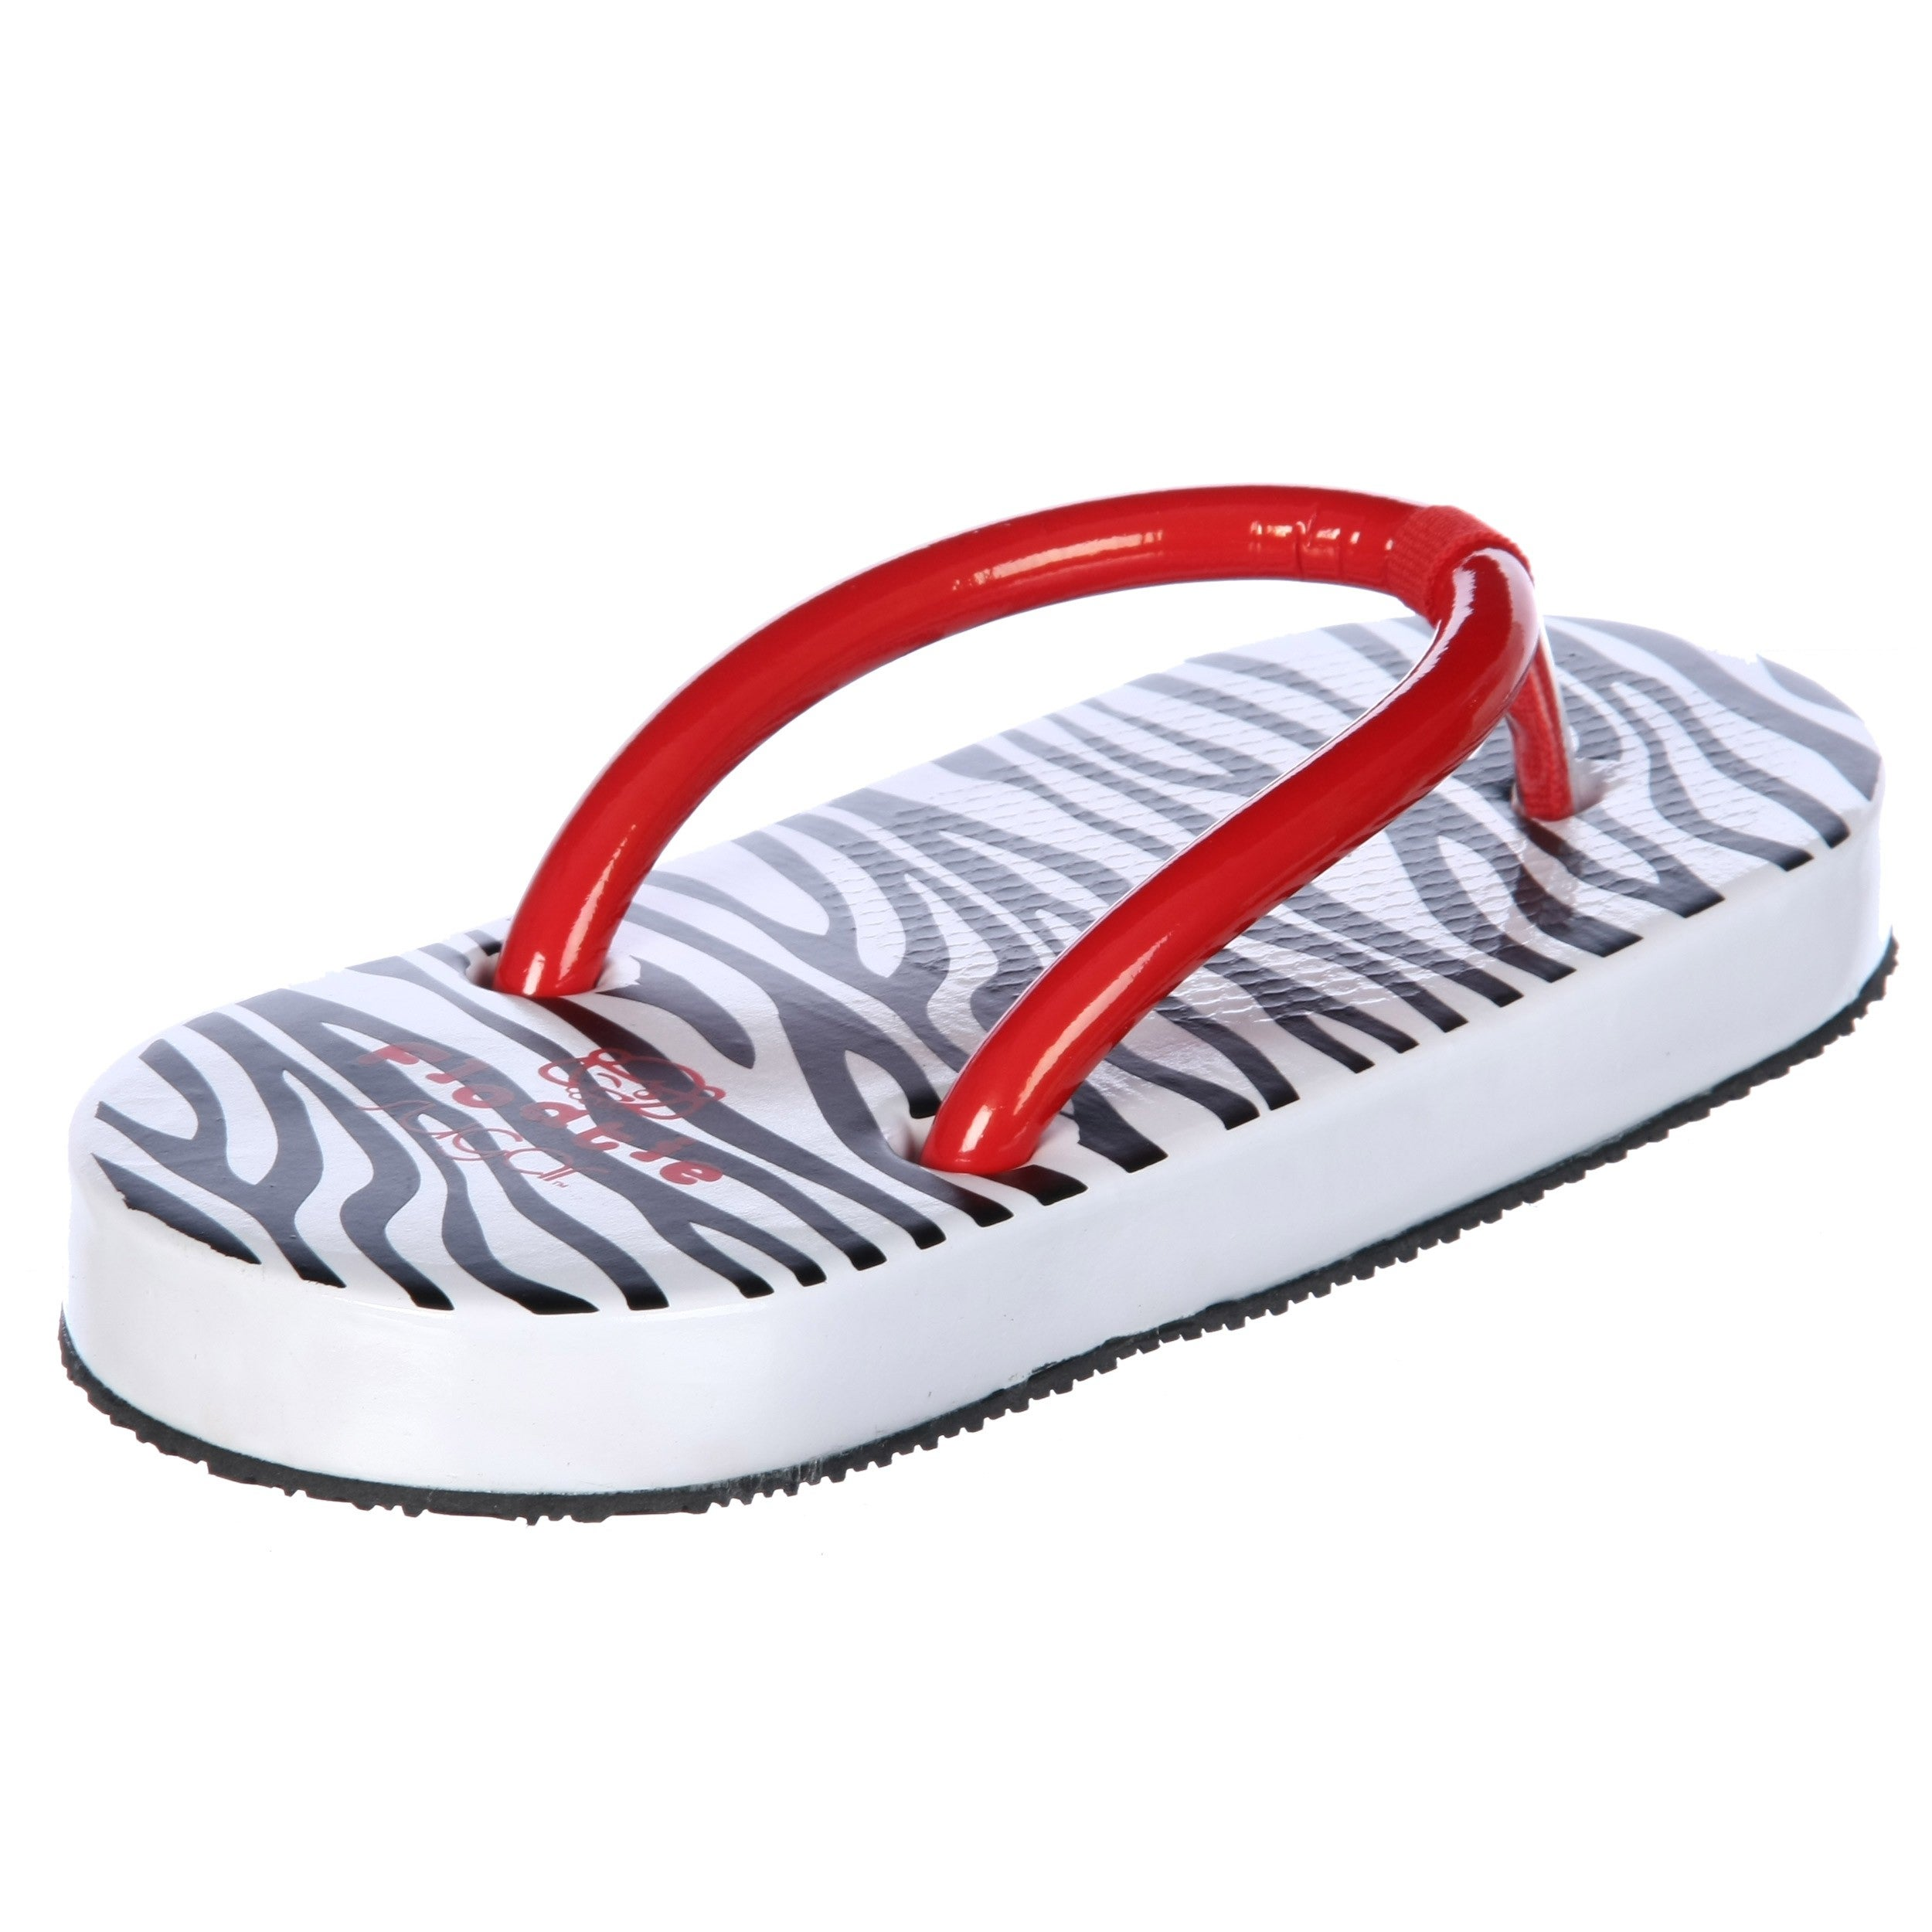 9b7f8be81 Shop Sugar Women s  Floatie  Flip Flop Sandals - Free Shipping On Orders  Over  45 - Overstock - 5809366